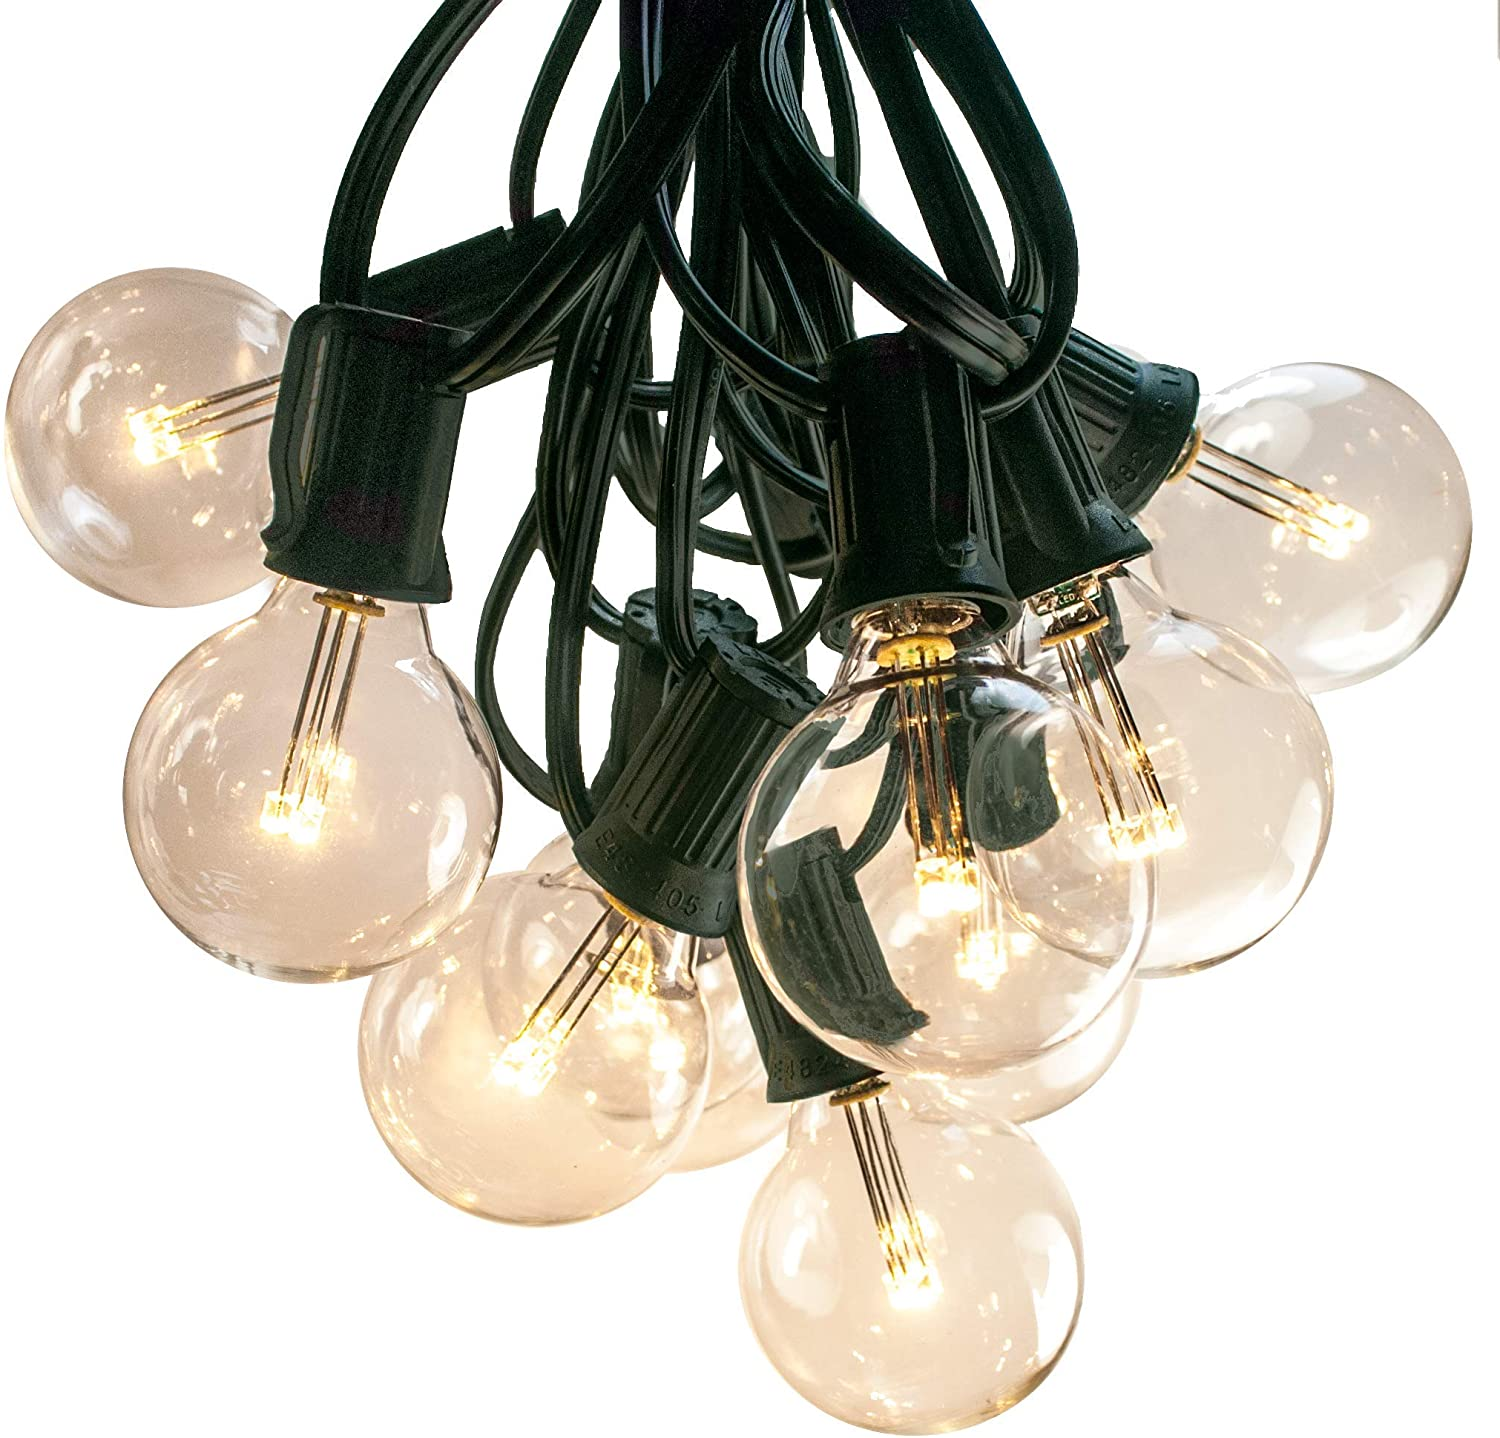 50 Foot LED Warm White Outdoor Globe Patio String Lights - Set of 50 LED G40 Clear 1.6 Inch Bulbs with Green Wire